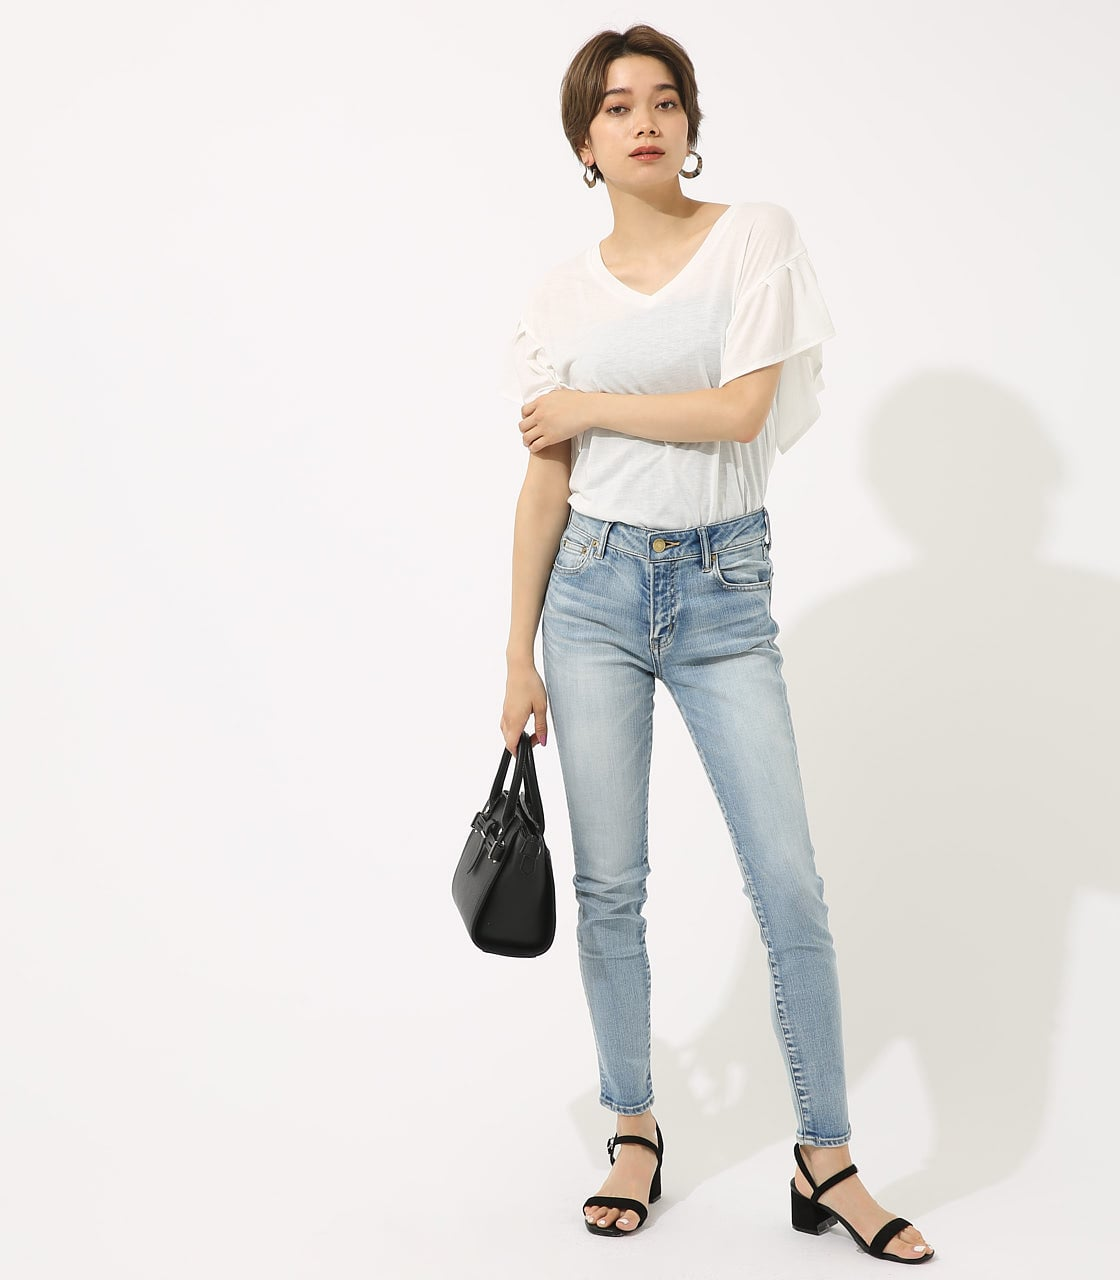 【AZUL BY MOUSSY】SOFT TOUCH スキニー 詳細画像 L/BLU 3